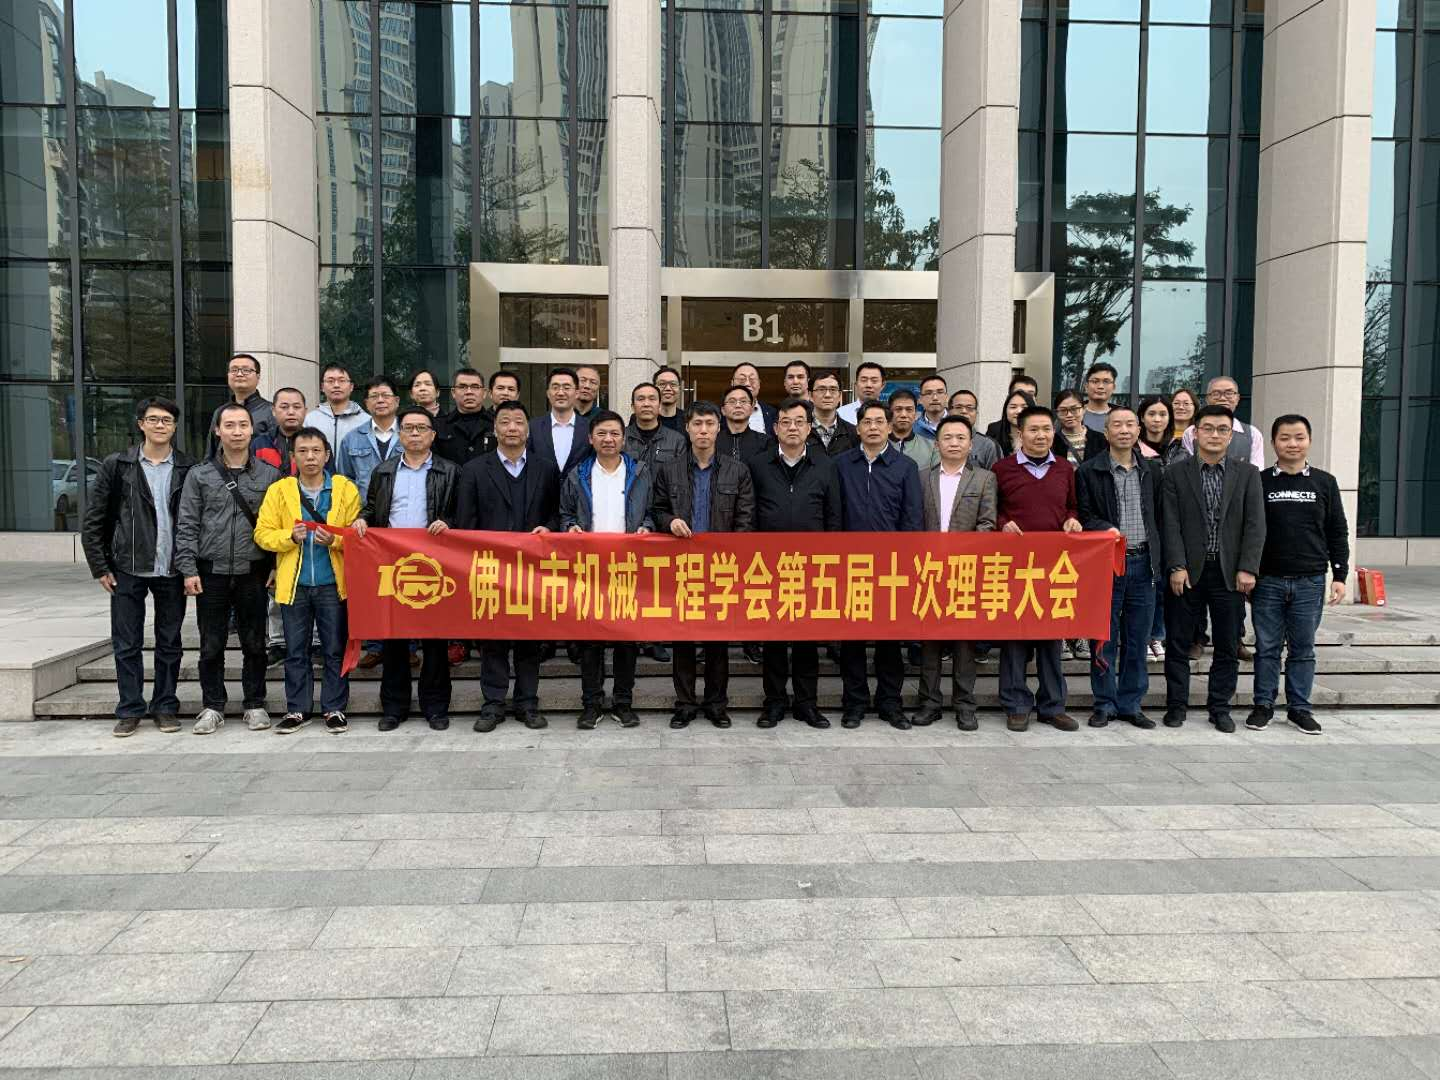 The 10th Board of Directors Meeting of Foshan Mechanical Engineering Society was held